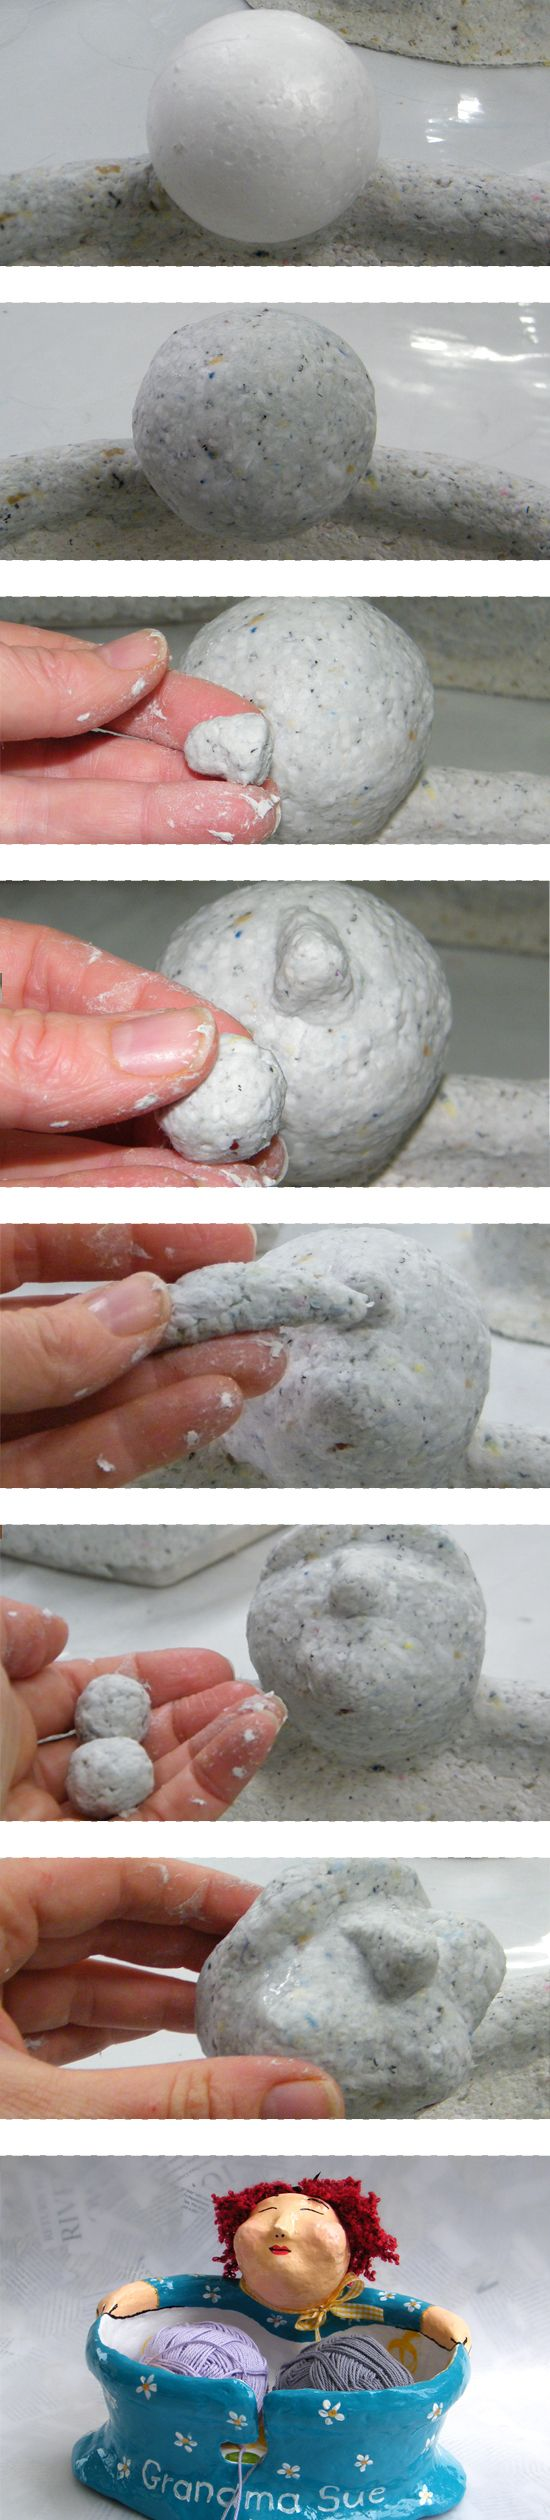 How to make paper mache face https://www.etsy.com/listing/215052817/personalized-yarn-bowl-whimsical?ref=shop_home_active_18